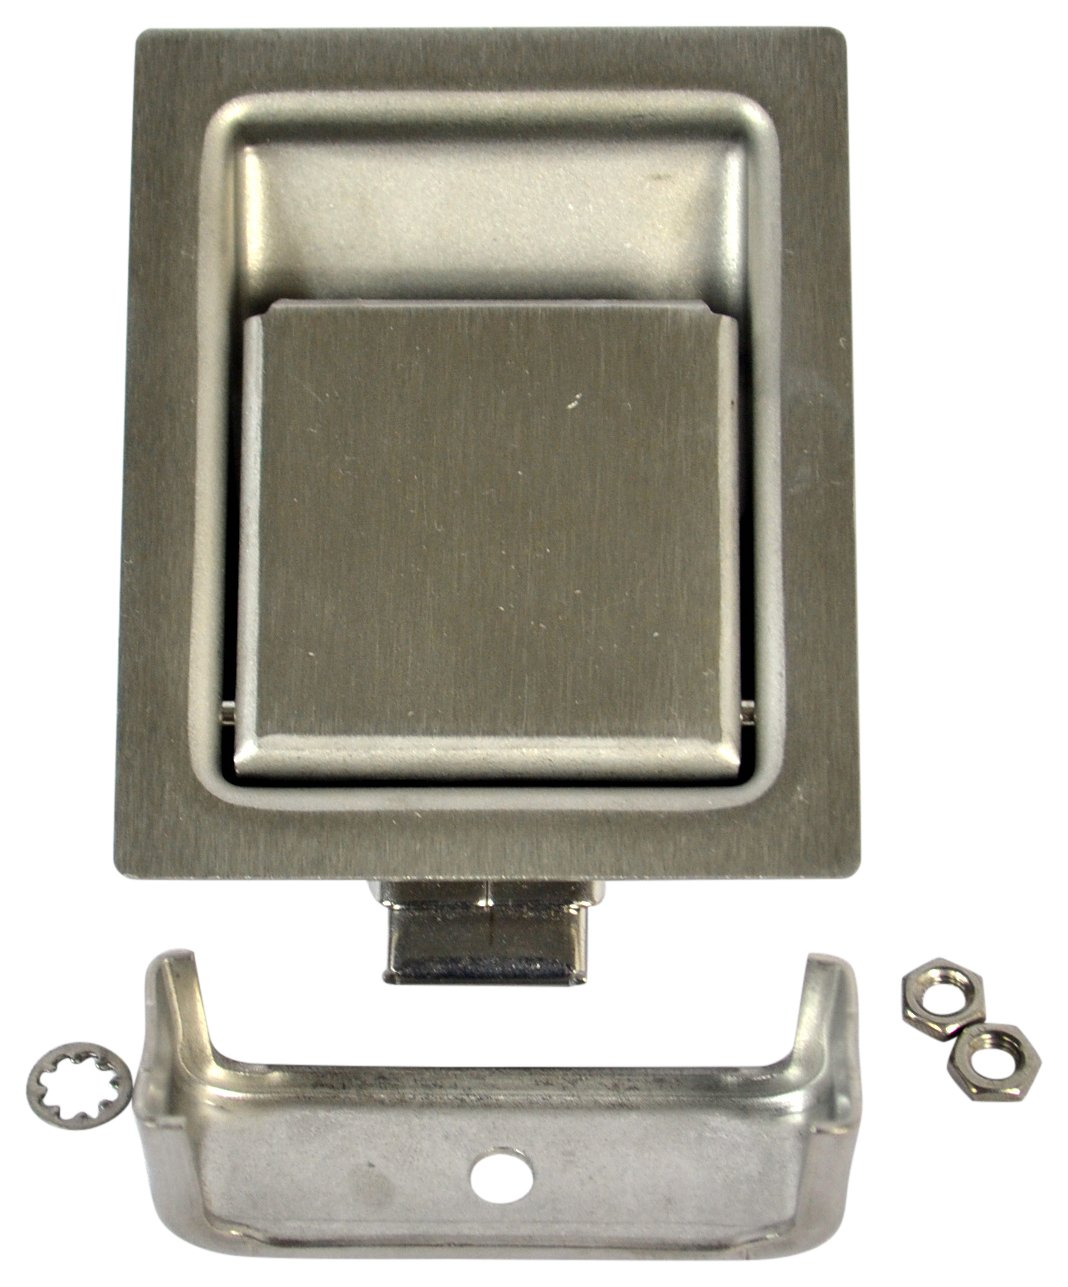 Southco Inc 64-21-10 Flush Paddle Latch 2.81 Long x 2.19 W Installation Hole, Southco Flush Paddle Latches (Pack of 6)